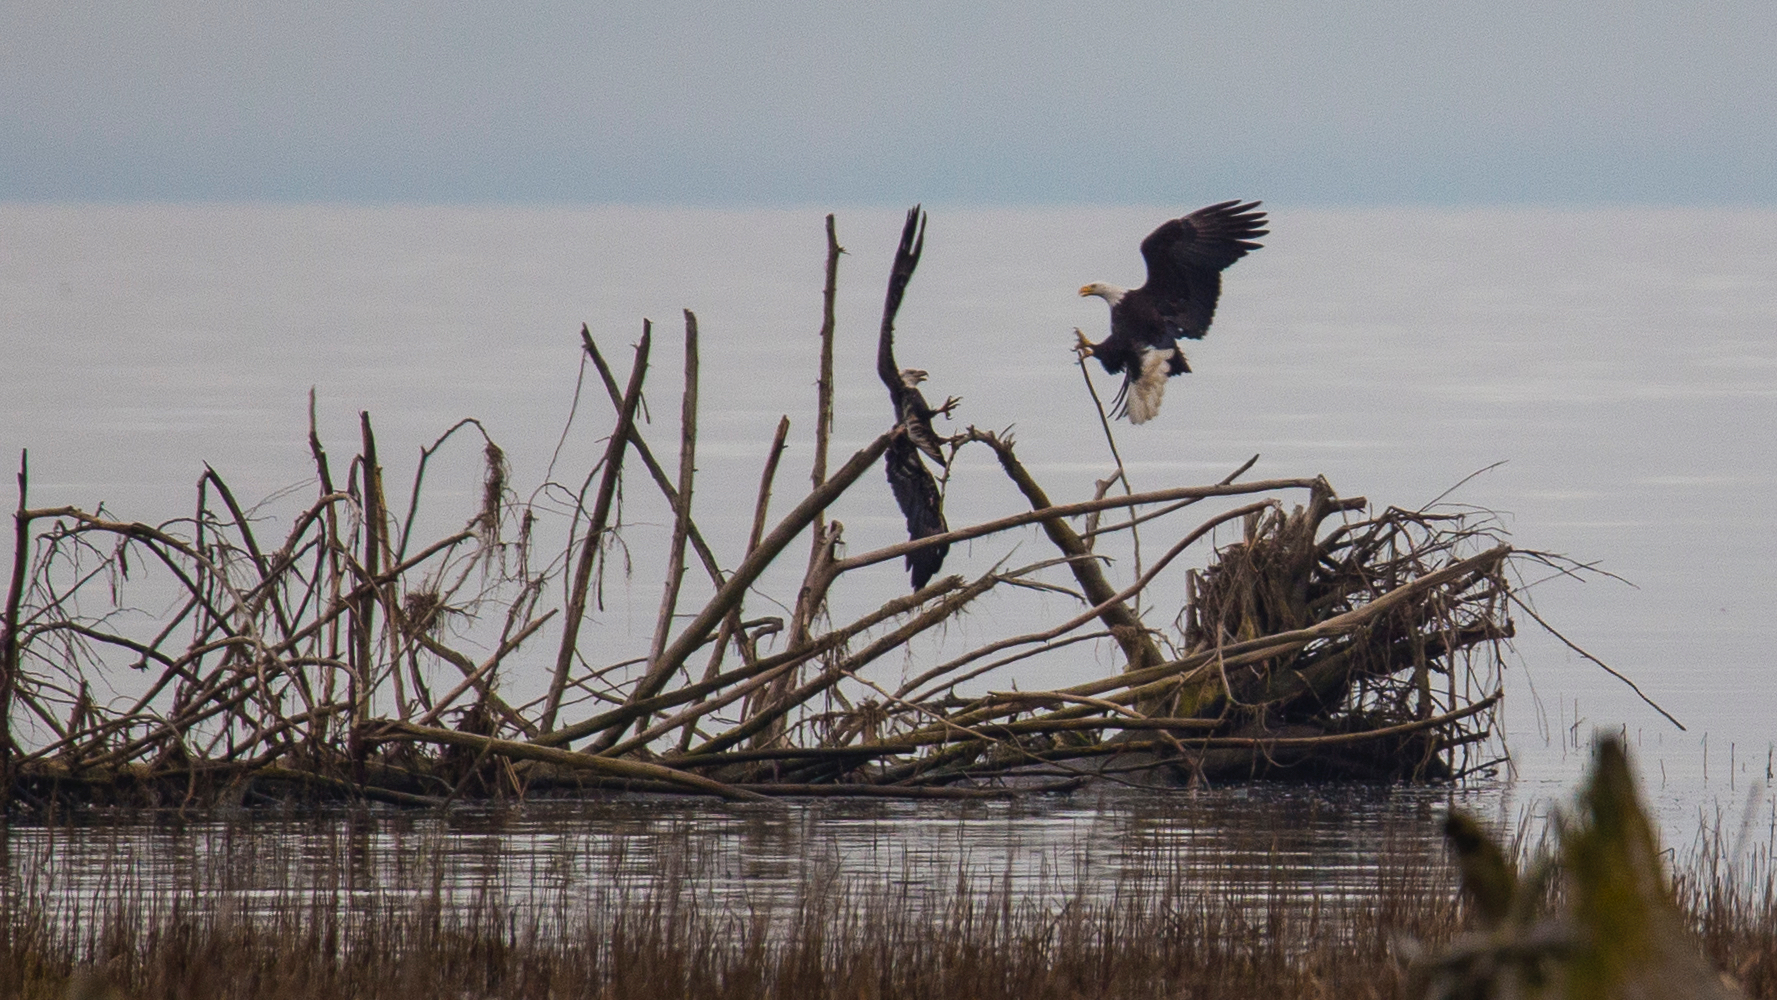 The pair of eagles seemed to be fighting over territory… or maybe mating - not really sure but it was cool!